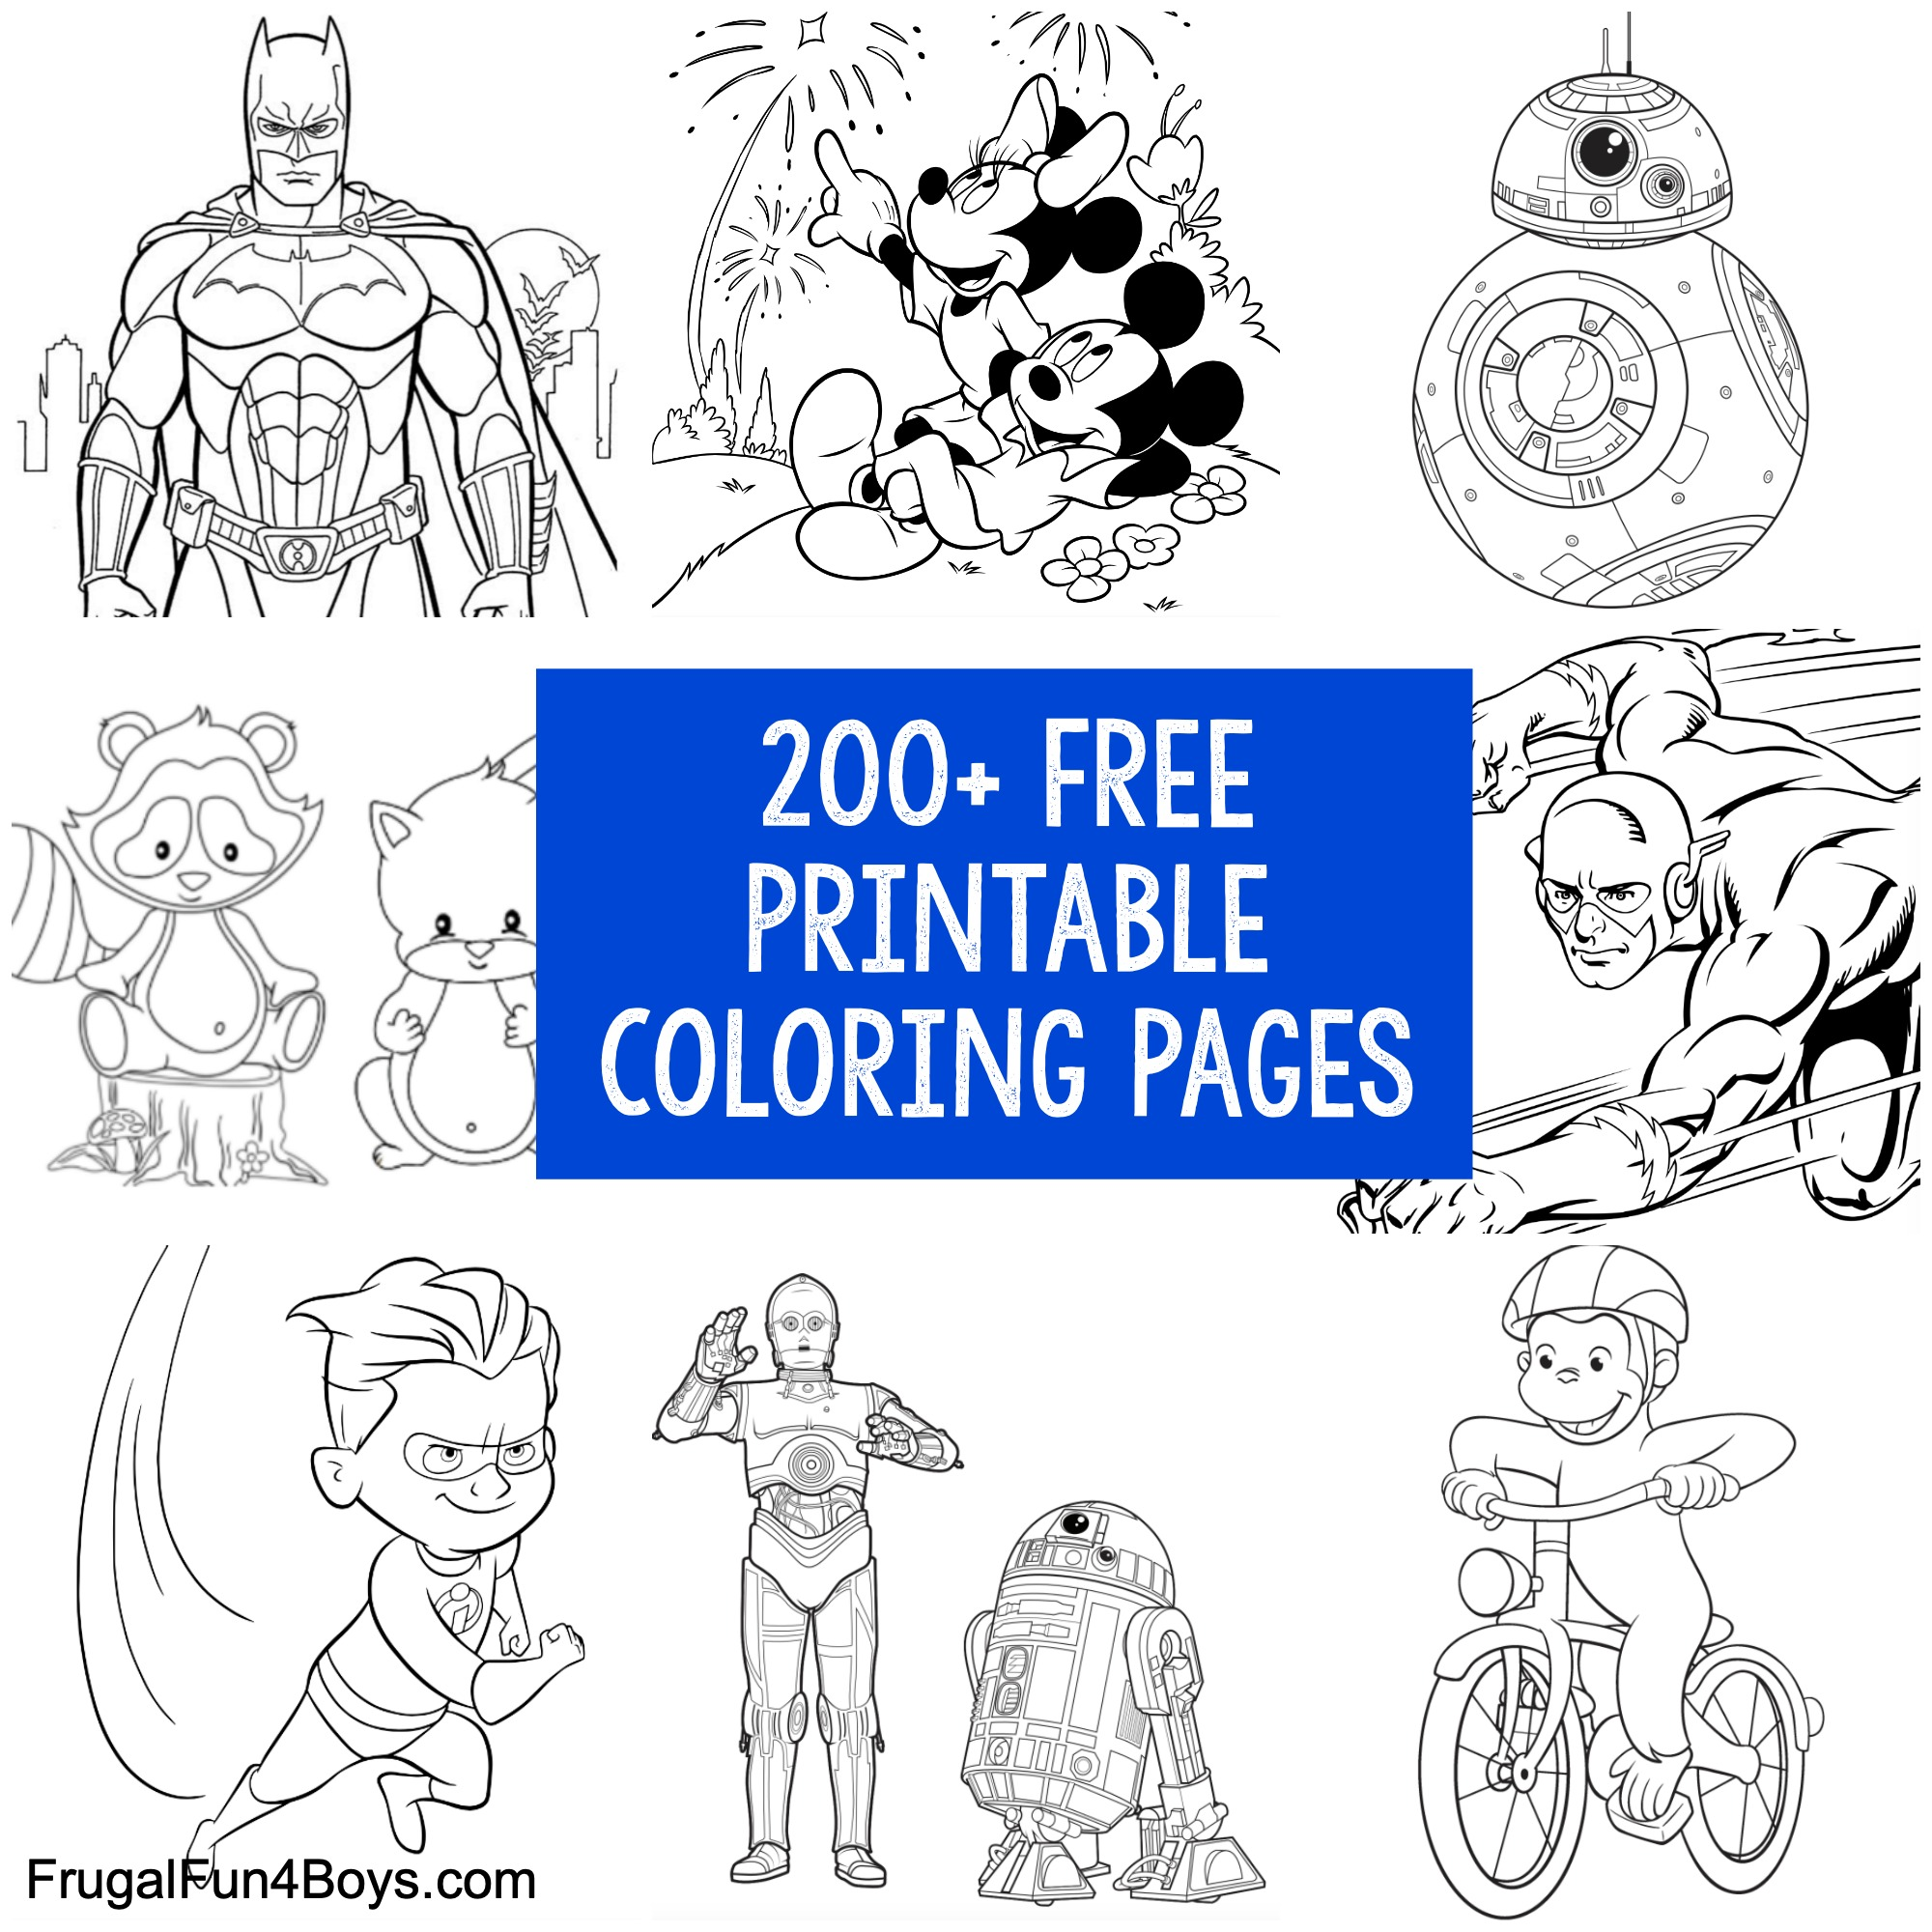 200 Printable Coloring Pages For Kids Frugal Fun For Boys And Girls